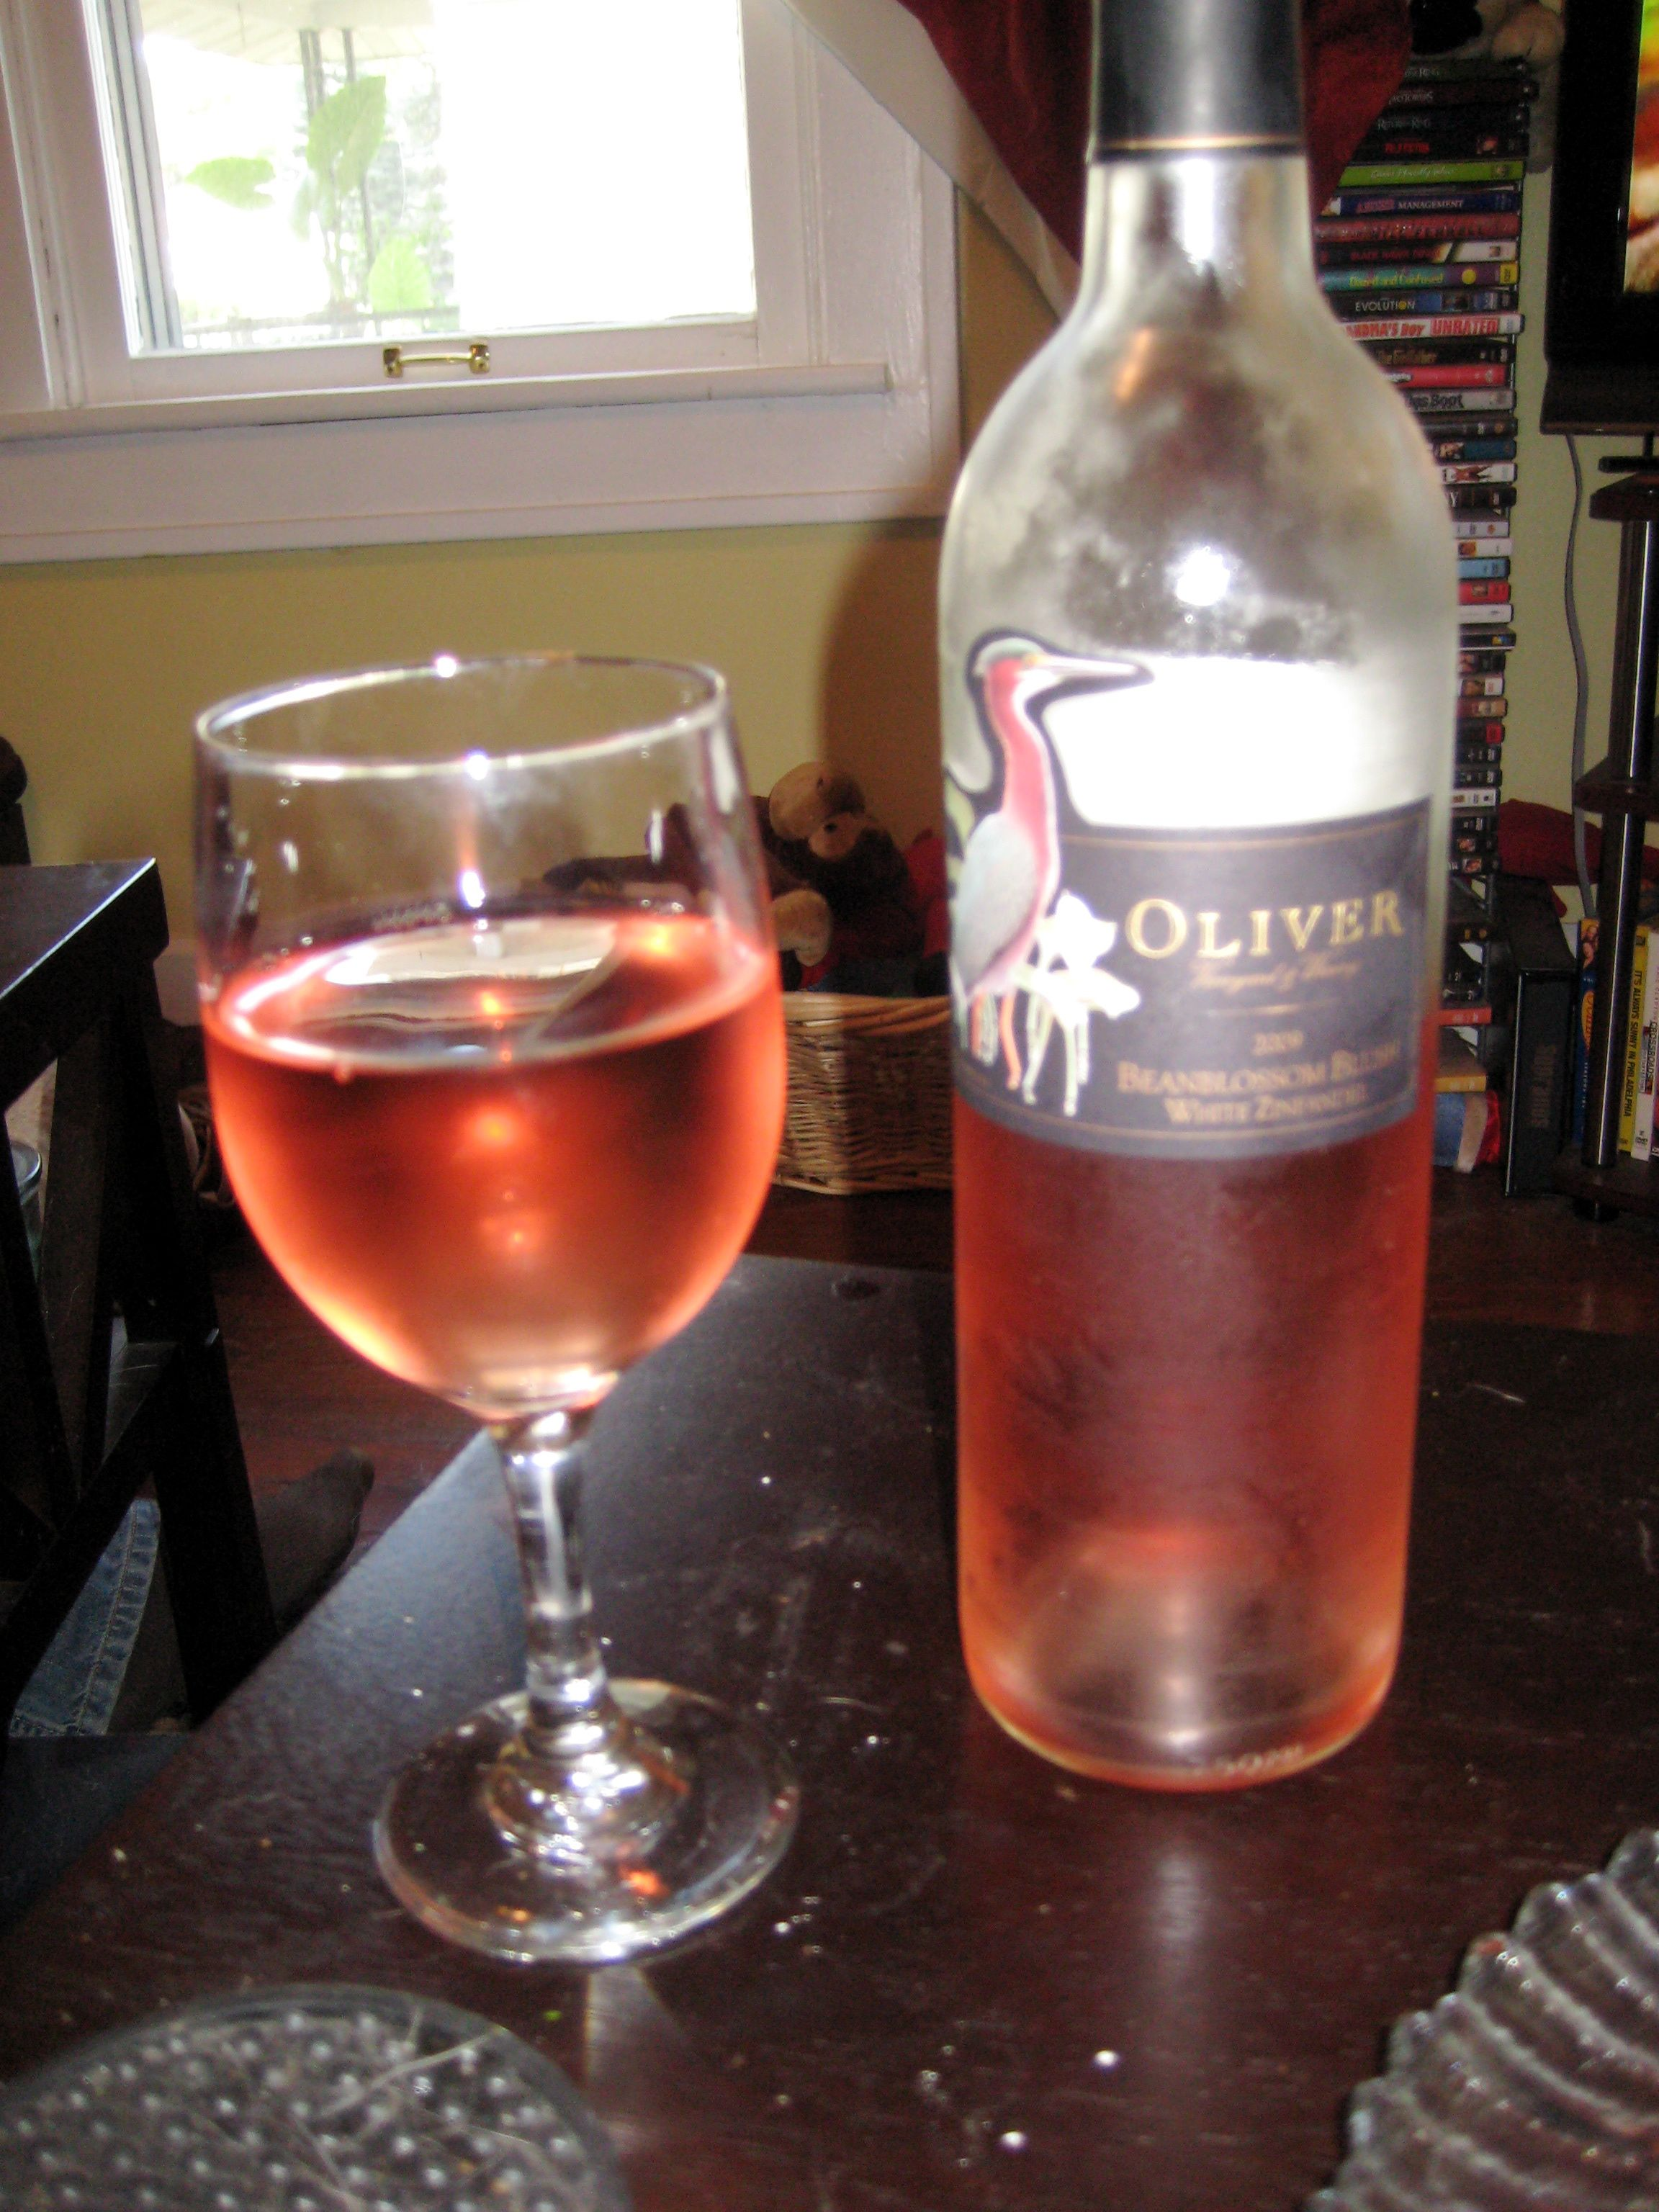 This Wine Is So Good My Favorite Of The Oliver Collection It Is A Beanblossum White Zinfandel It Is A Little On The White Zinfandel Wine And Spirits Wine